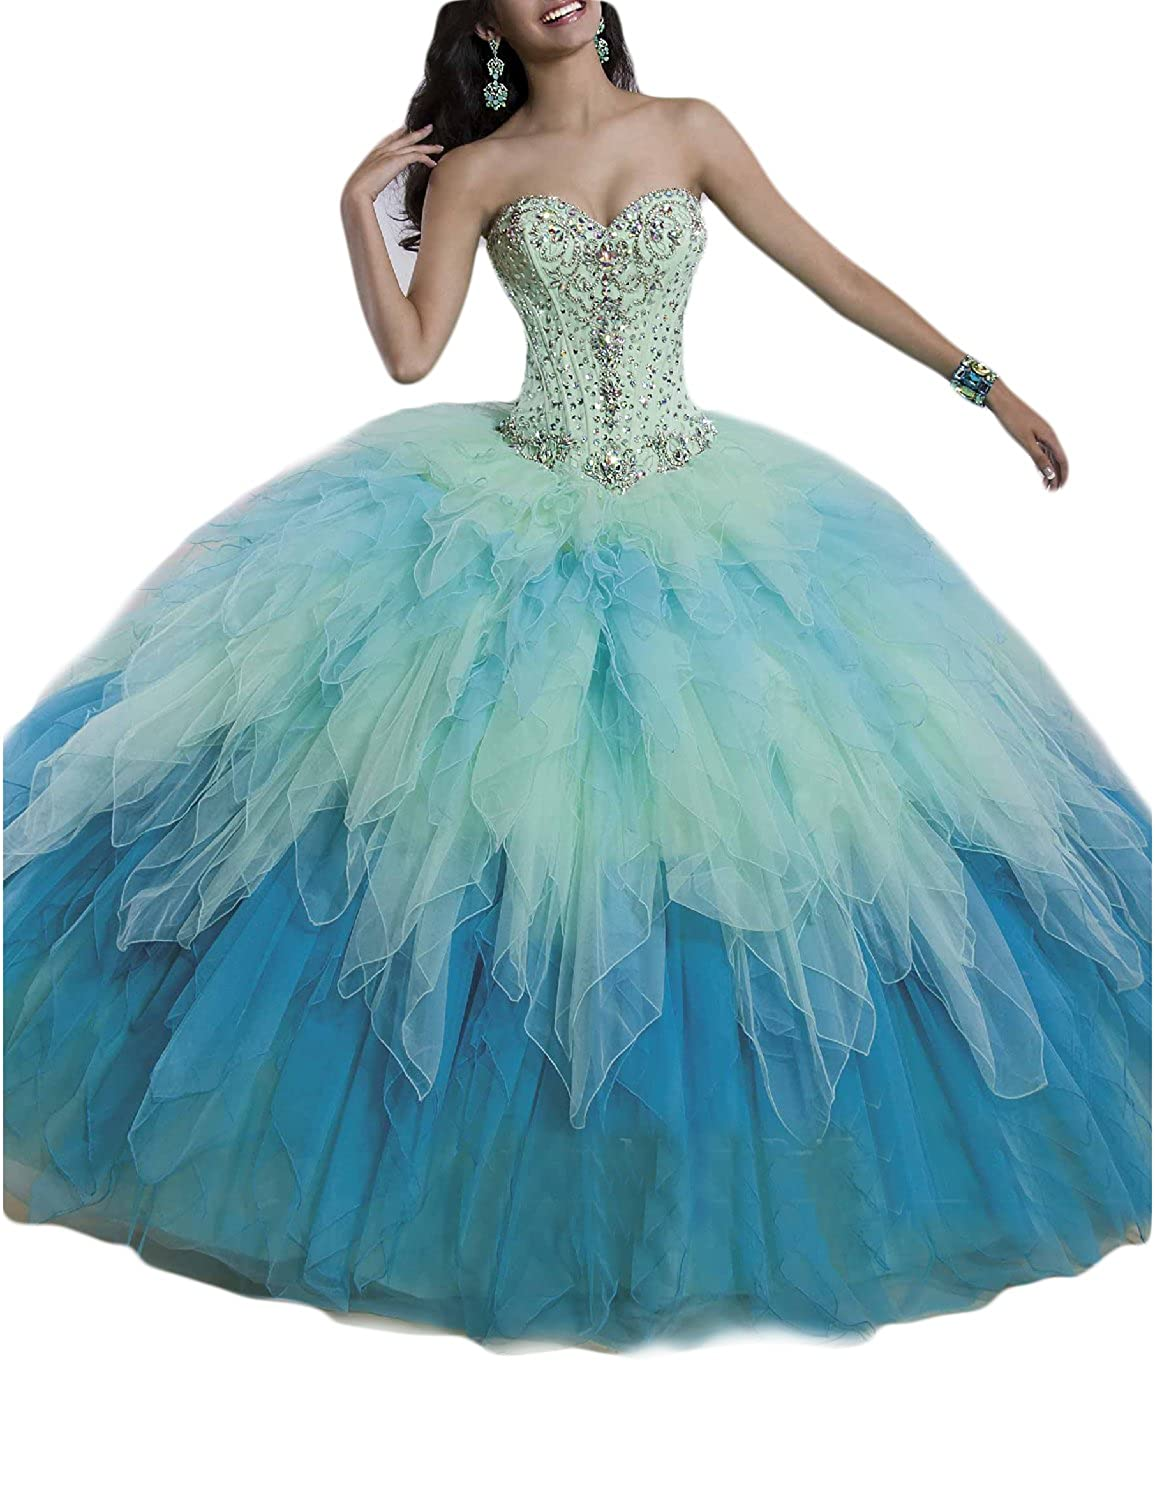 e0b2d211adf Amazoncom Oyisha Womens Gradient Strapless Ball Gown Prom Ombre